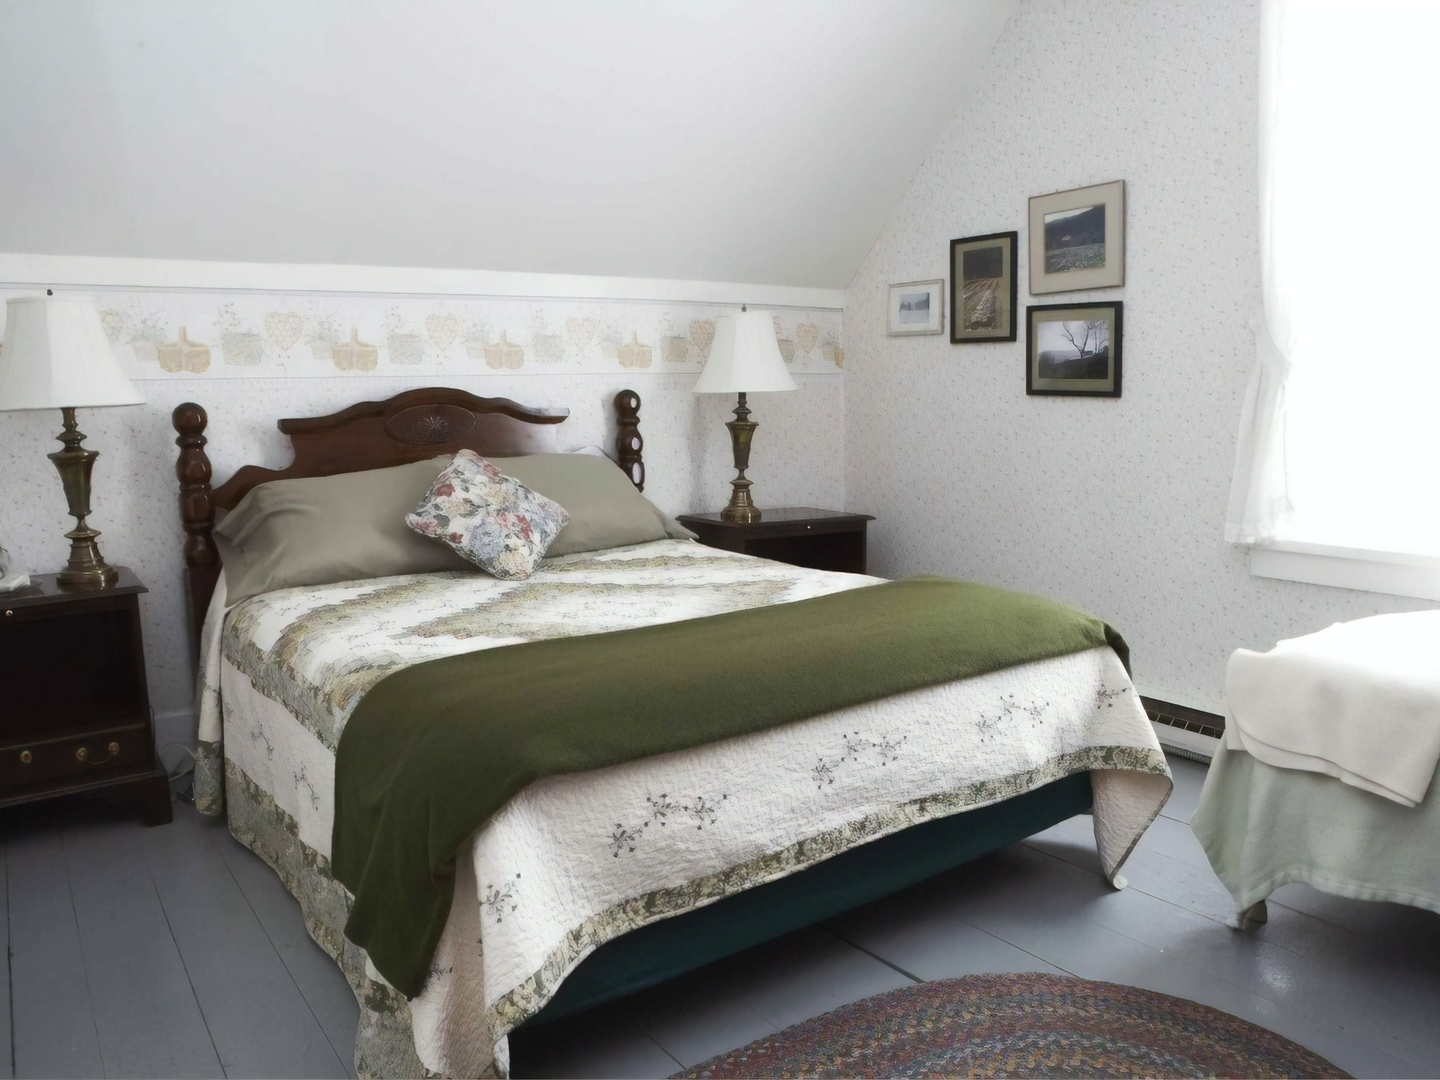 A bedroom with a large bed in a room at Liberty Hill Farm.